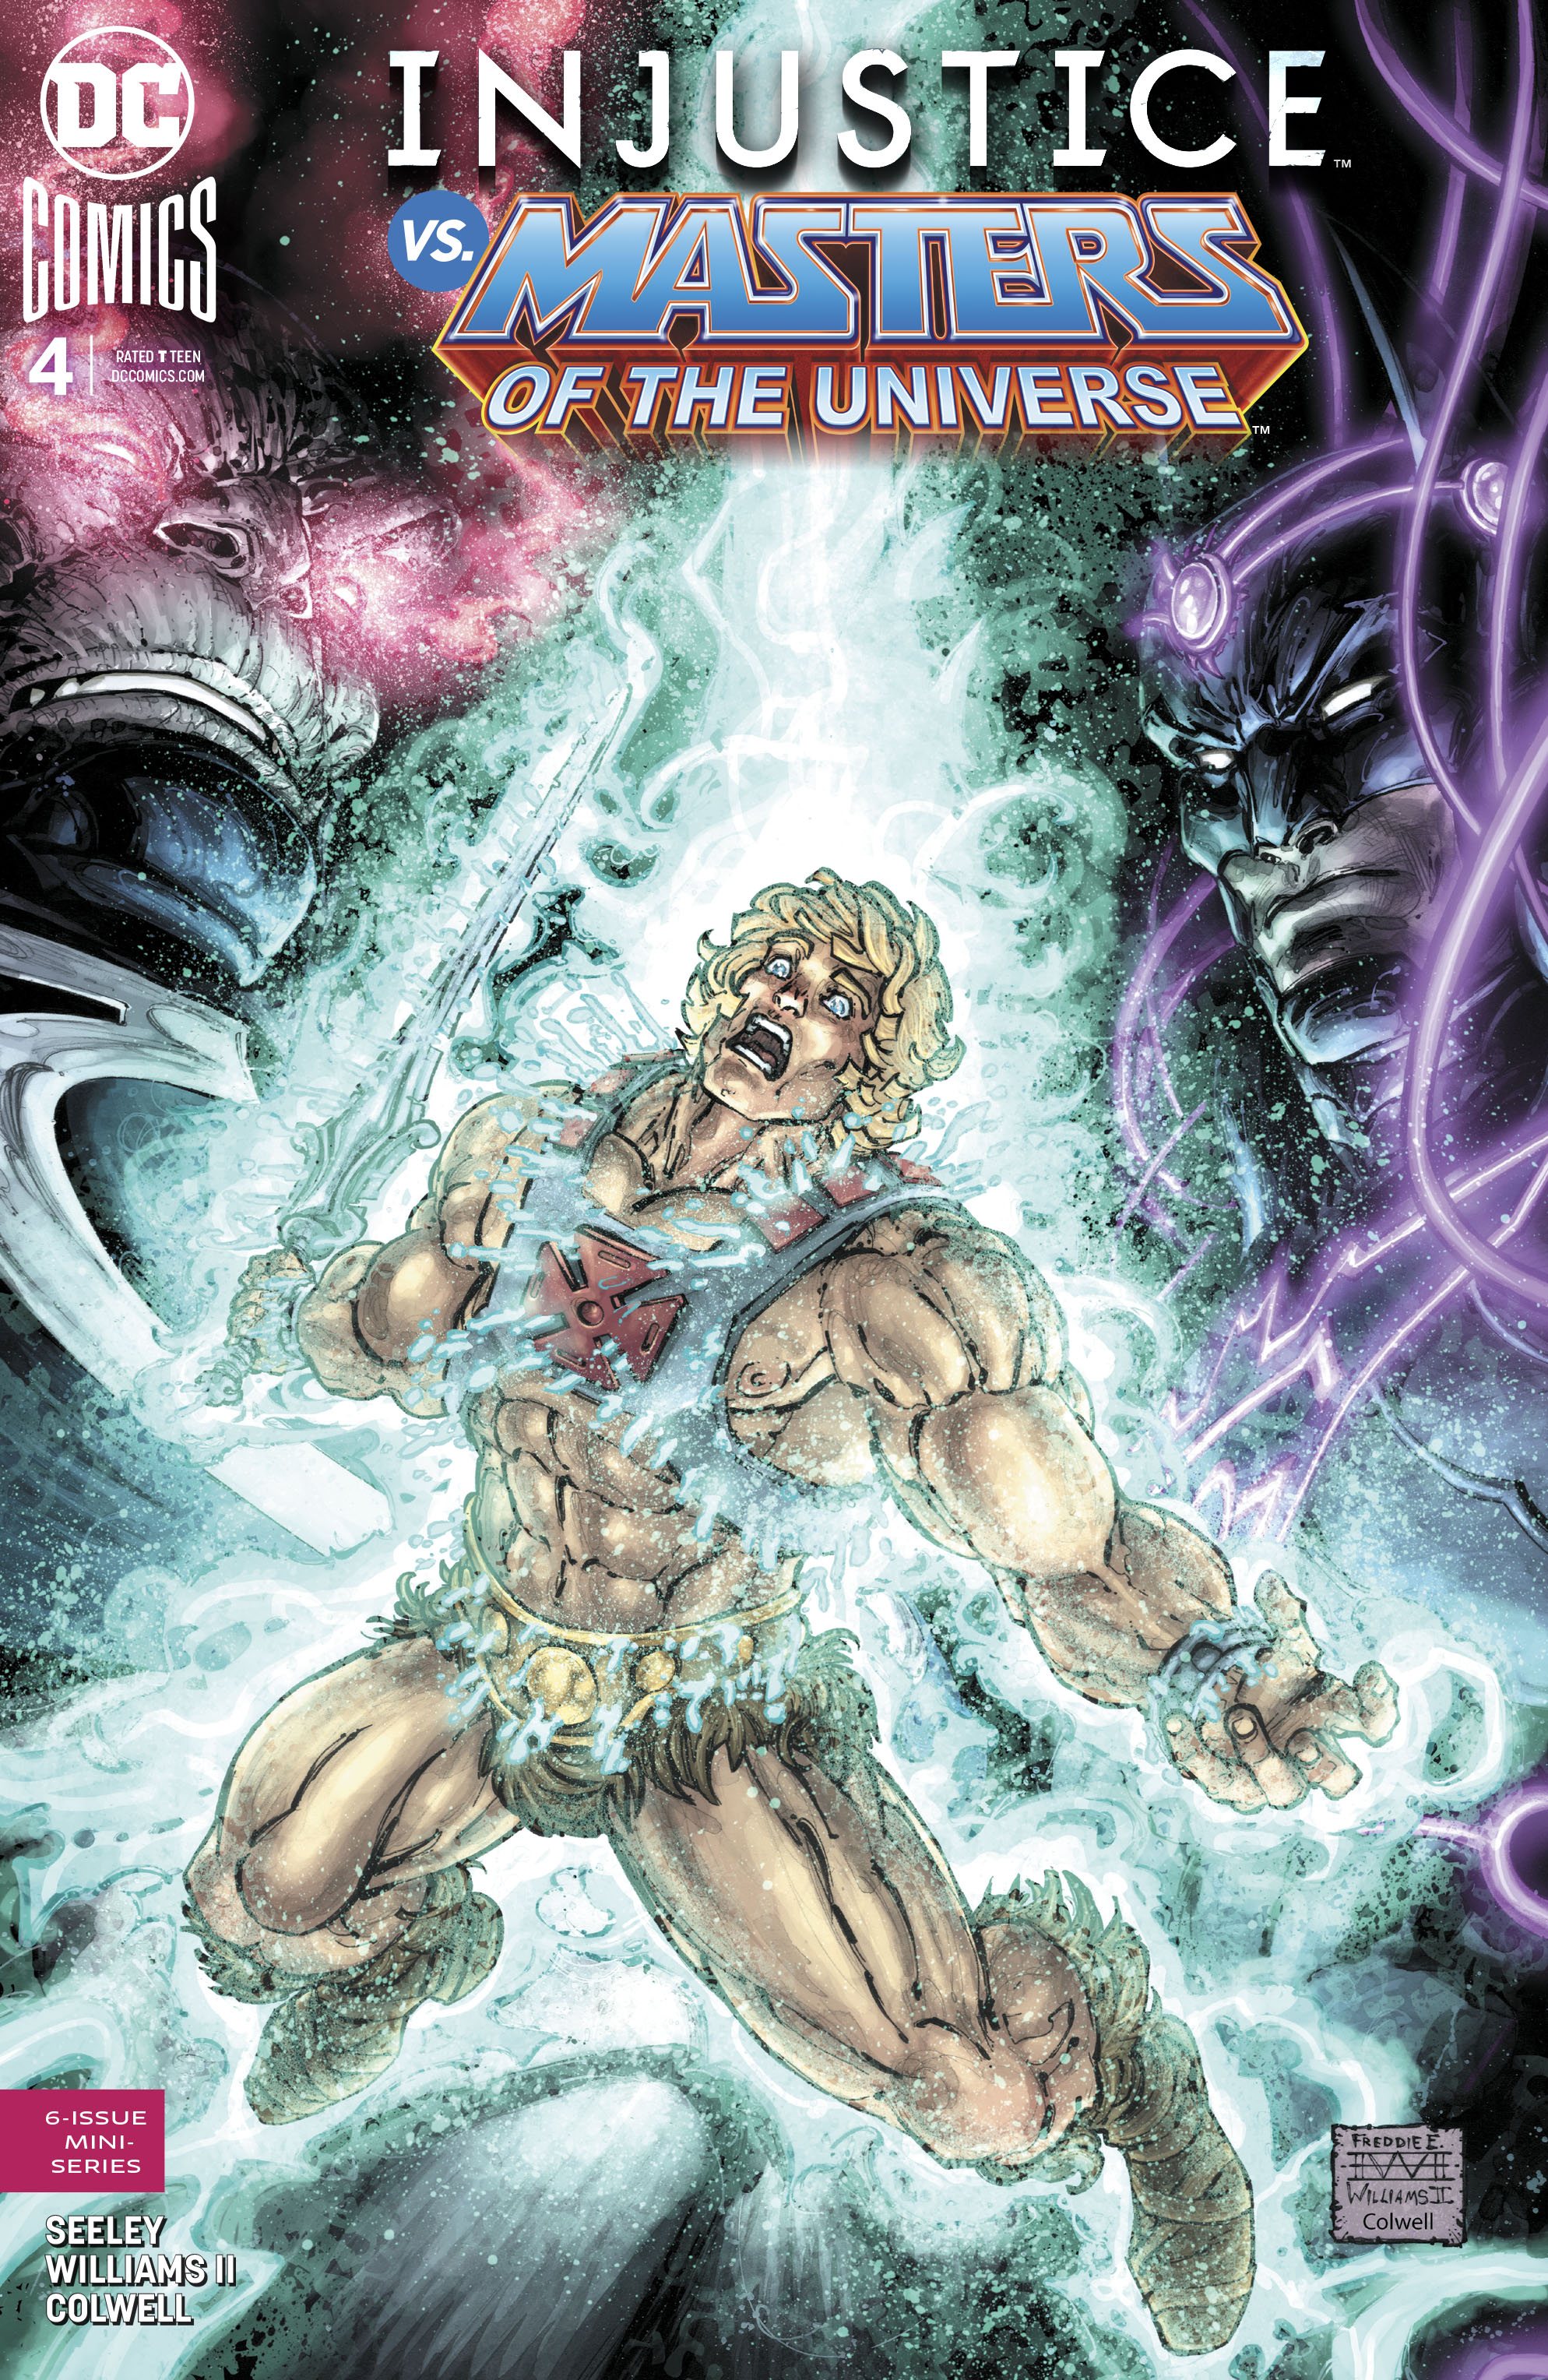 Injustice Vs Masters of the Universe 004 000